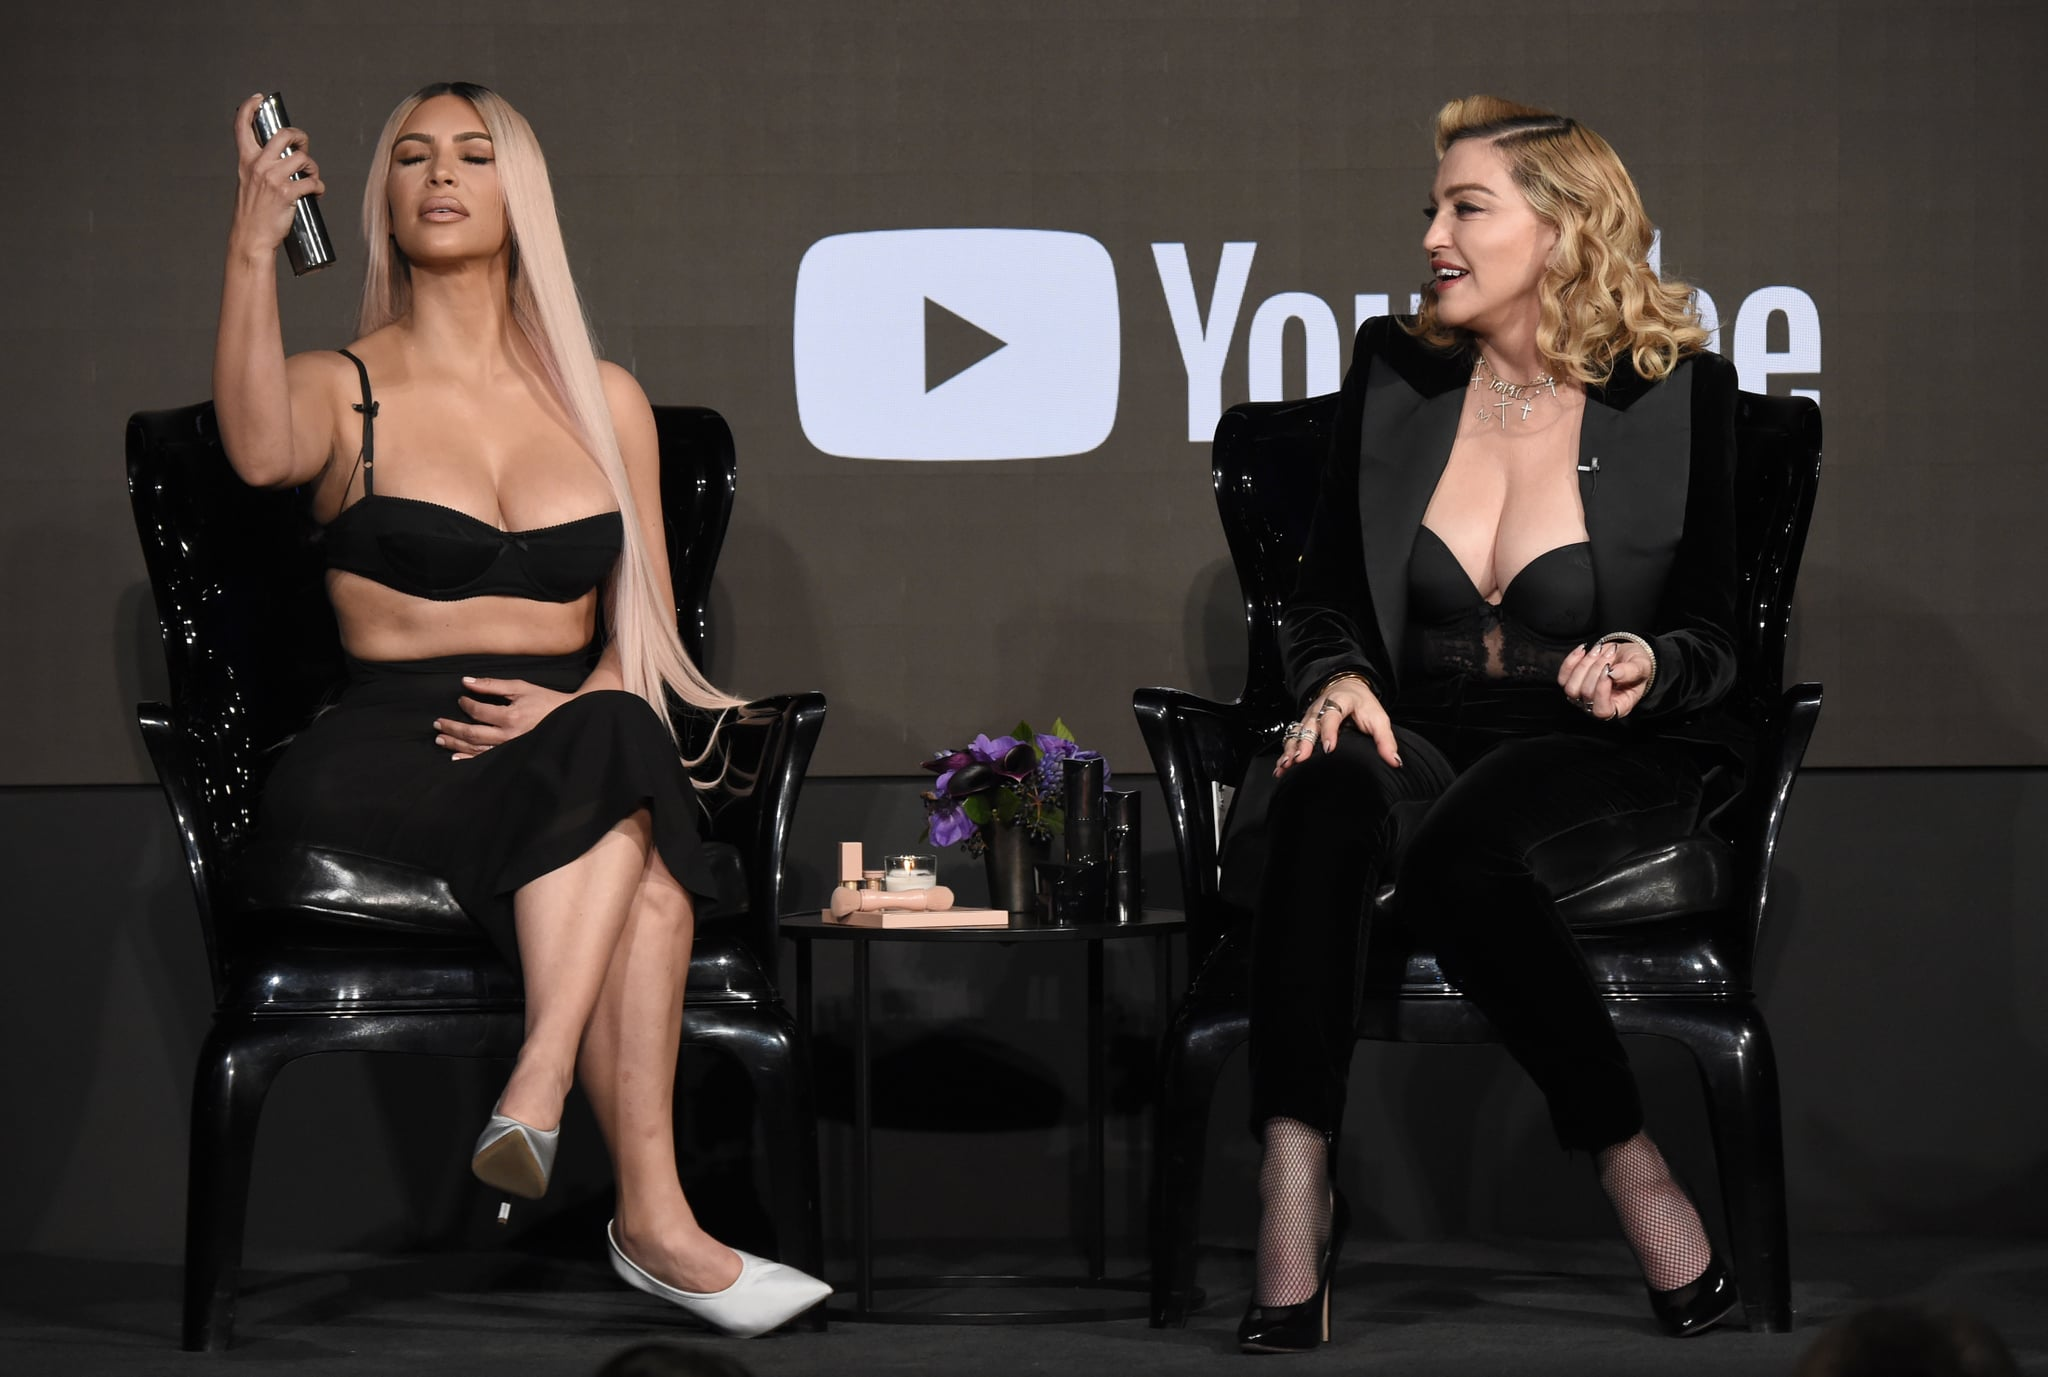 LOS ANGELES, CA - MARCH 06:  Kim Kardashian West and Madonna speak onstage at MDNA SKIN hosts Madonna and Kim Kardashian West for a beauty conversation at YouTube Space LA on March 6, 2018 in Los Angeles, California.  (Photo by Kevin Mazur/Getty Images for Madonna's MDNA SKIN)